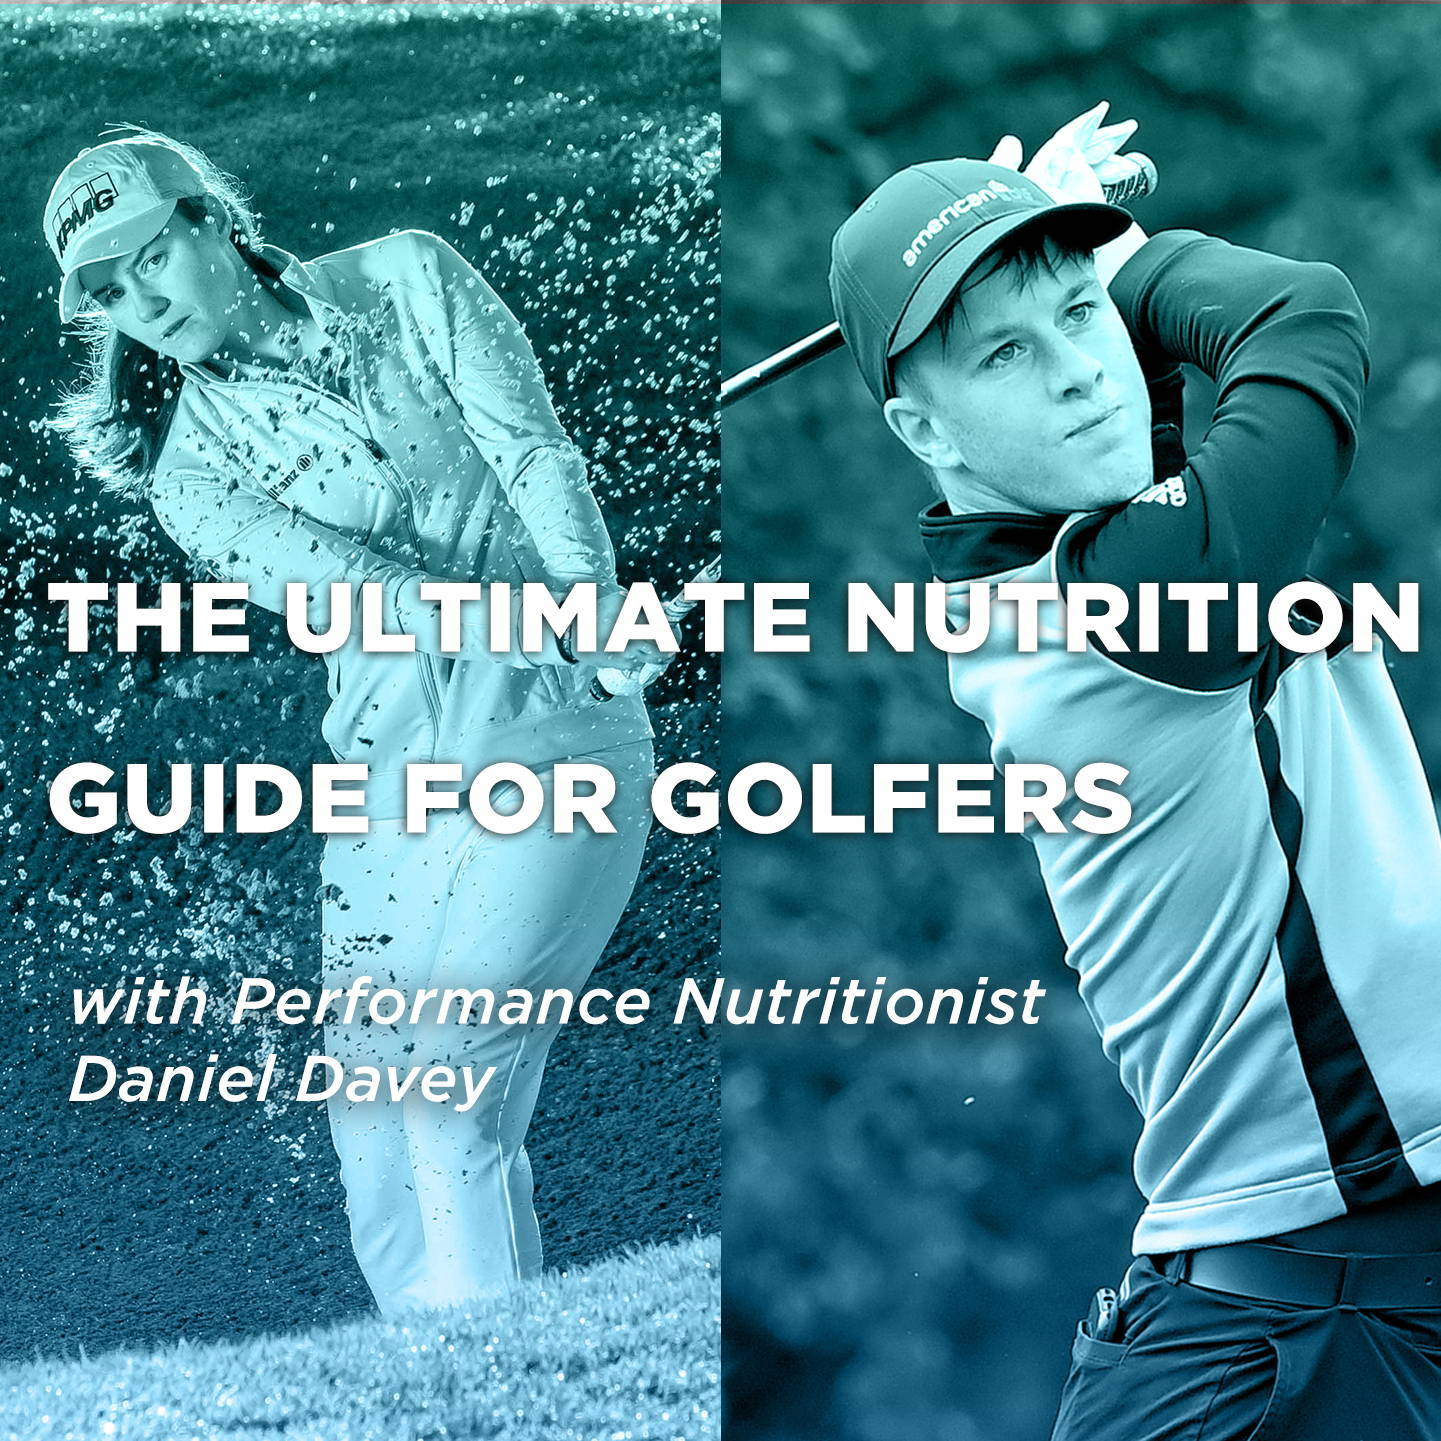 The Ultimate Nutrition Guide for Golfers